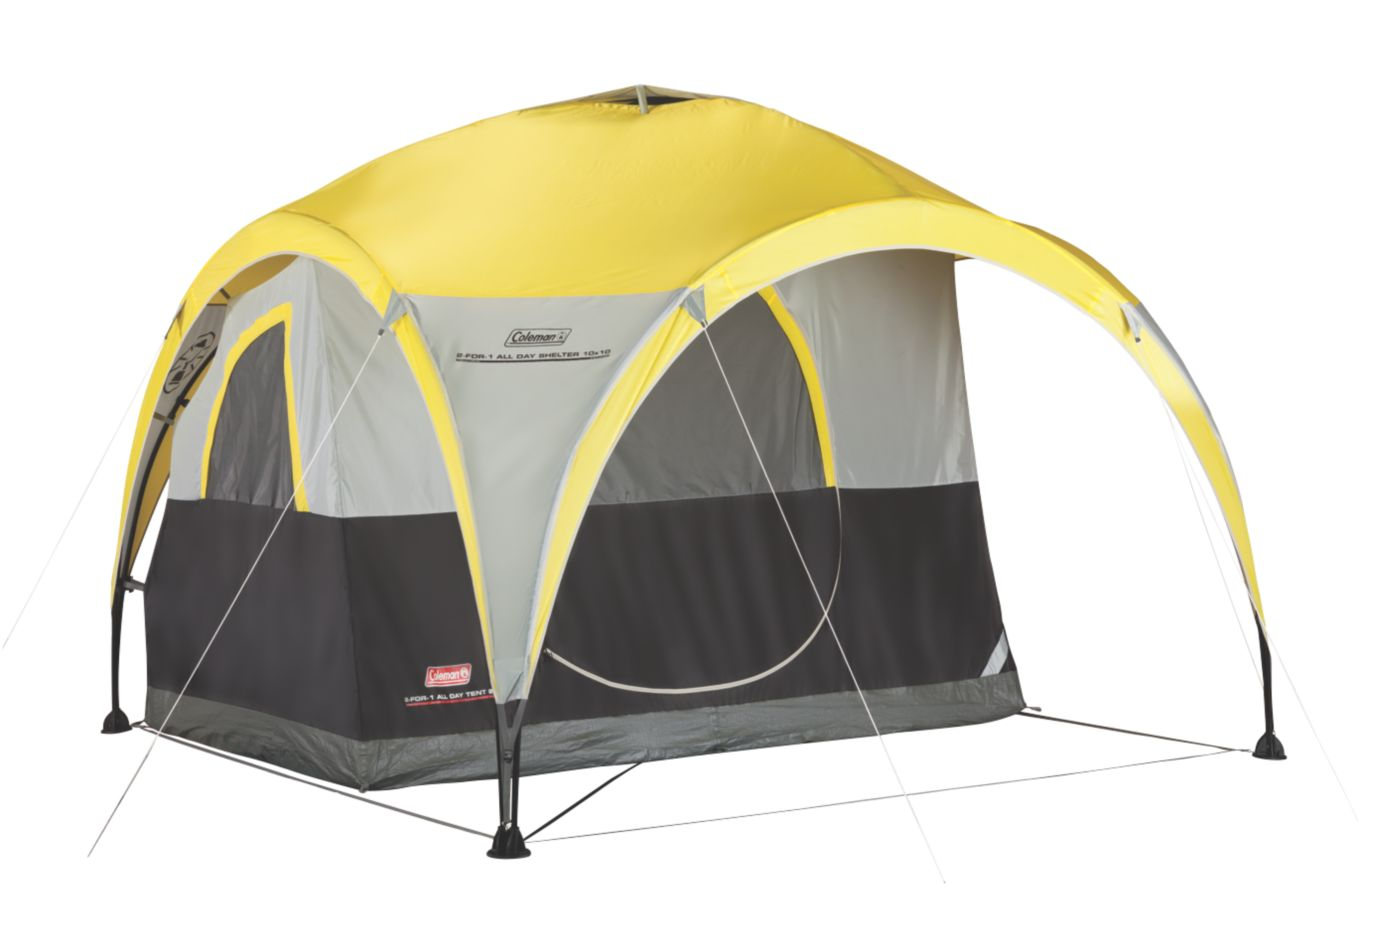 2-For-1 All Day 2-Person Shelter u0026 Tent  sc 1 st  Coleman : coleman 1 minute tent - memphite.com